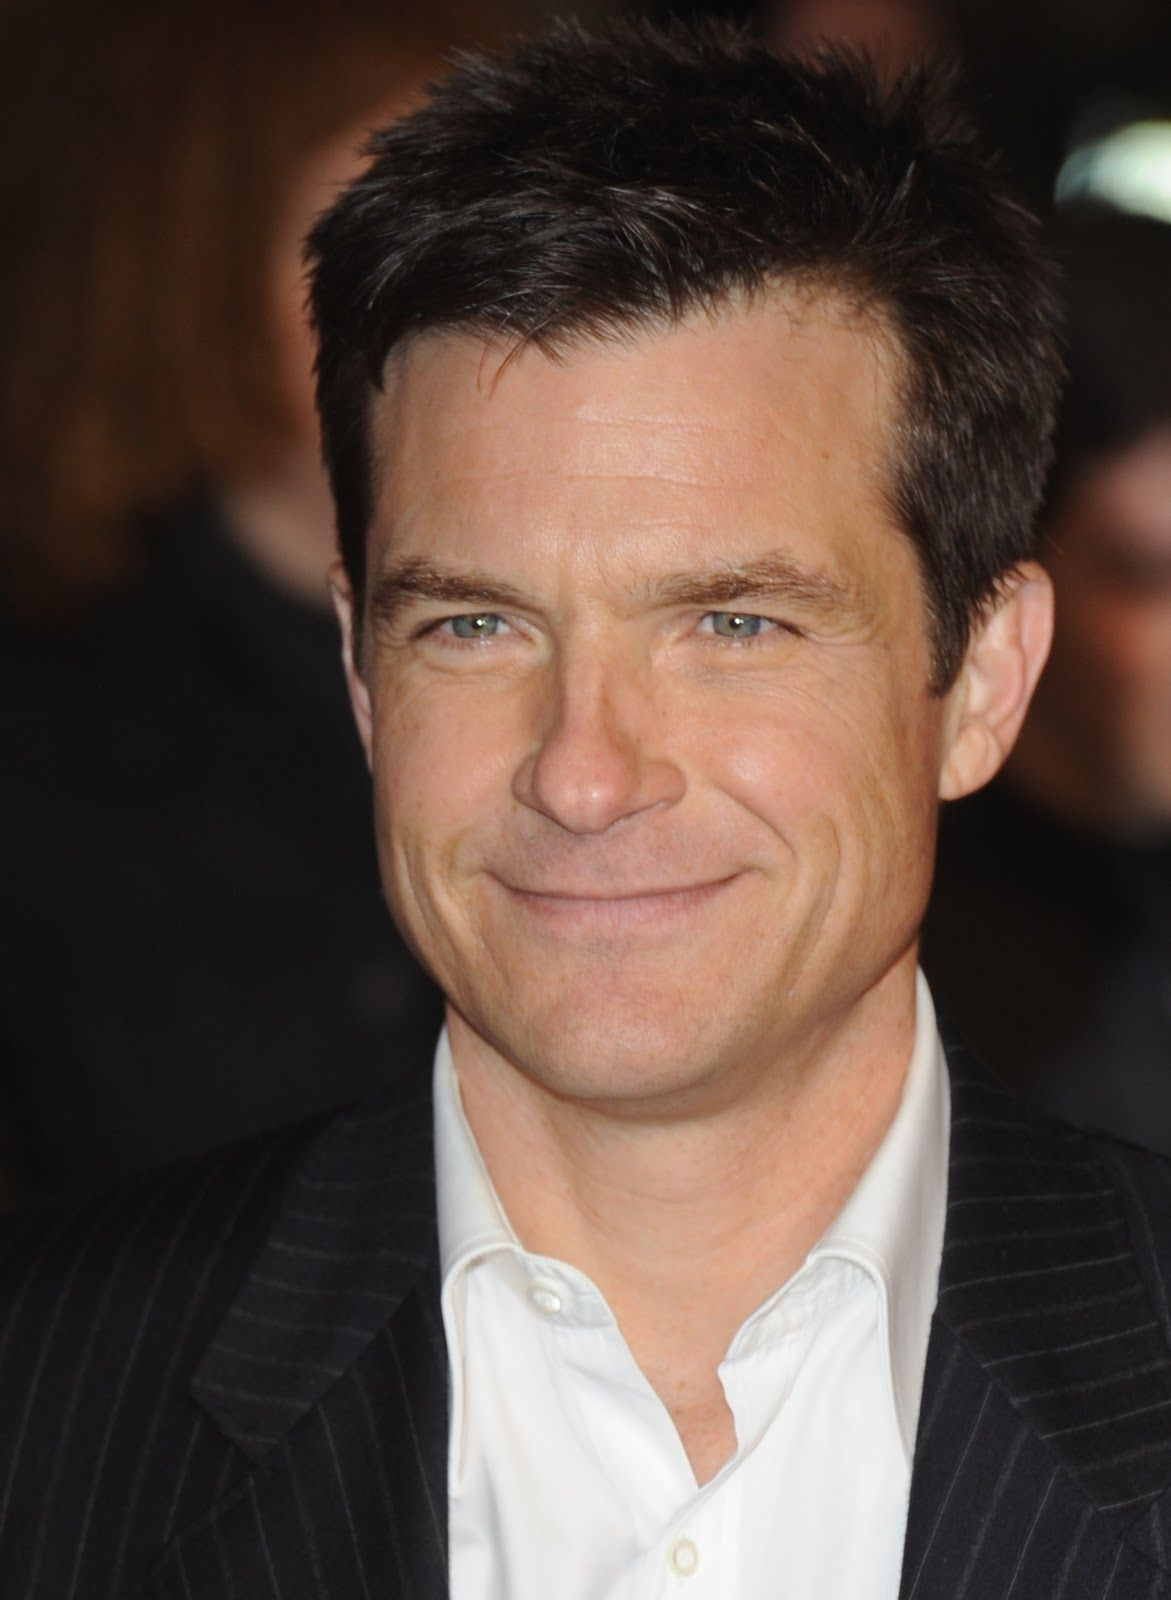 Jason Bateman from Identity Theif Celebrity pictures